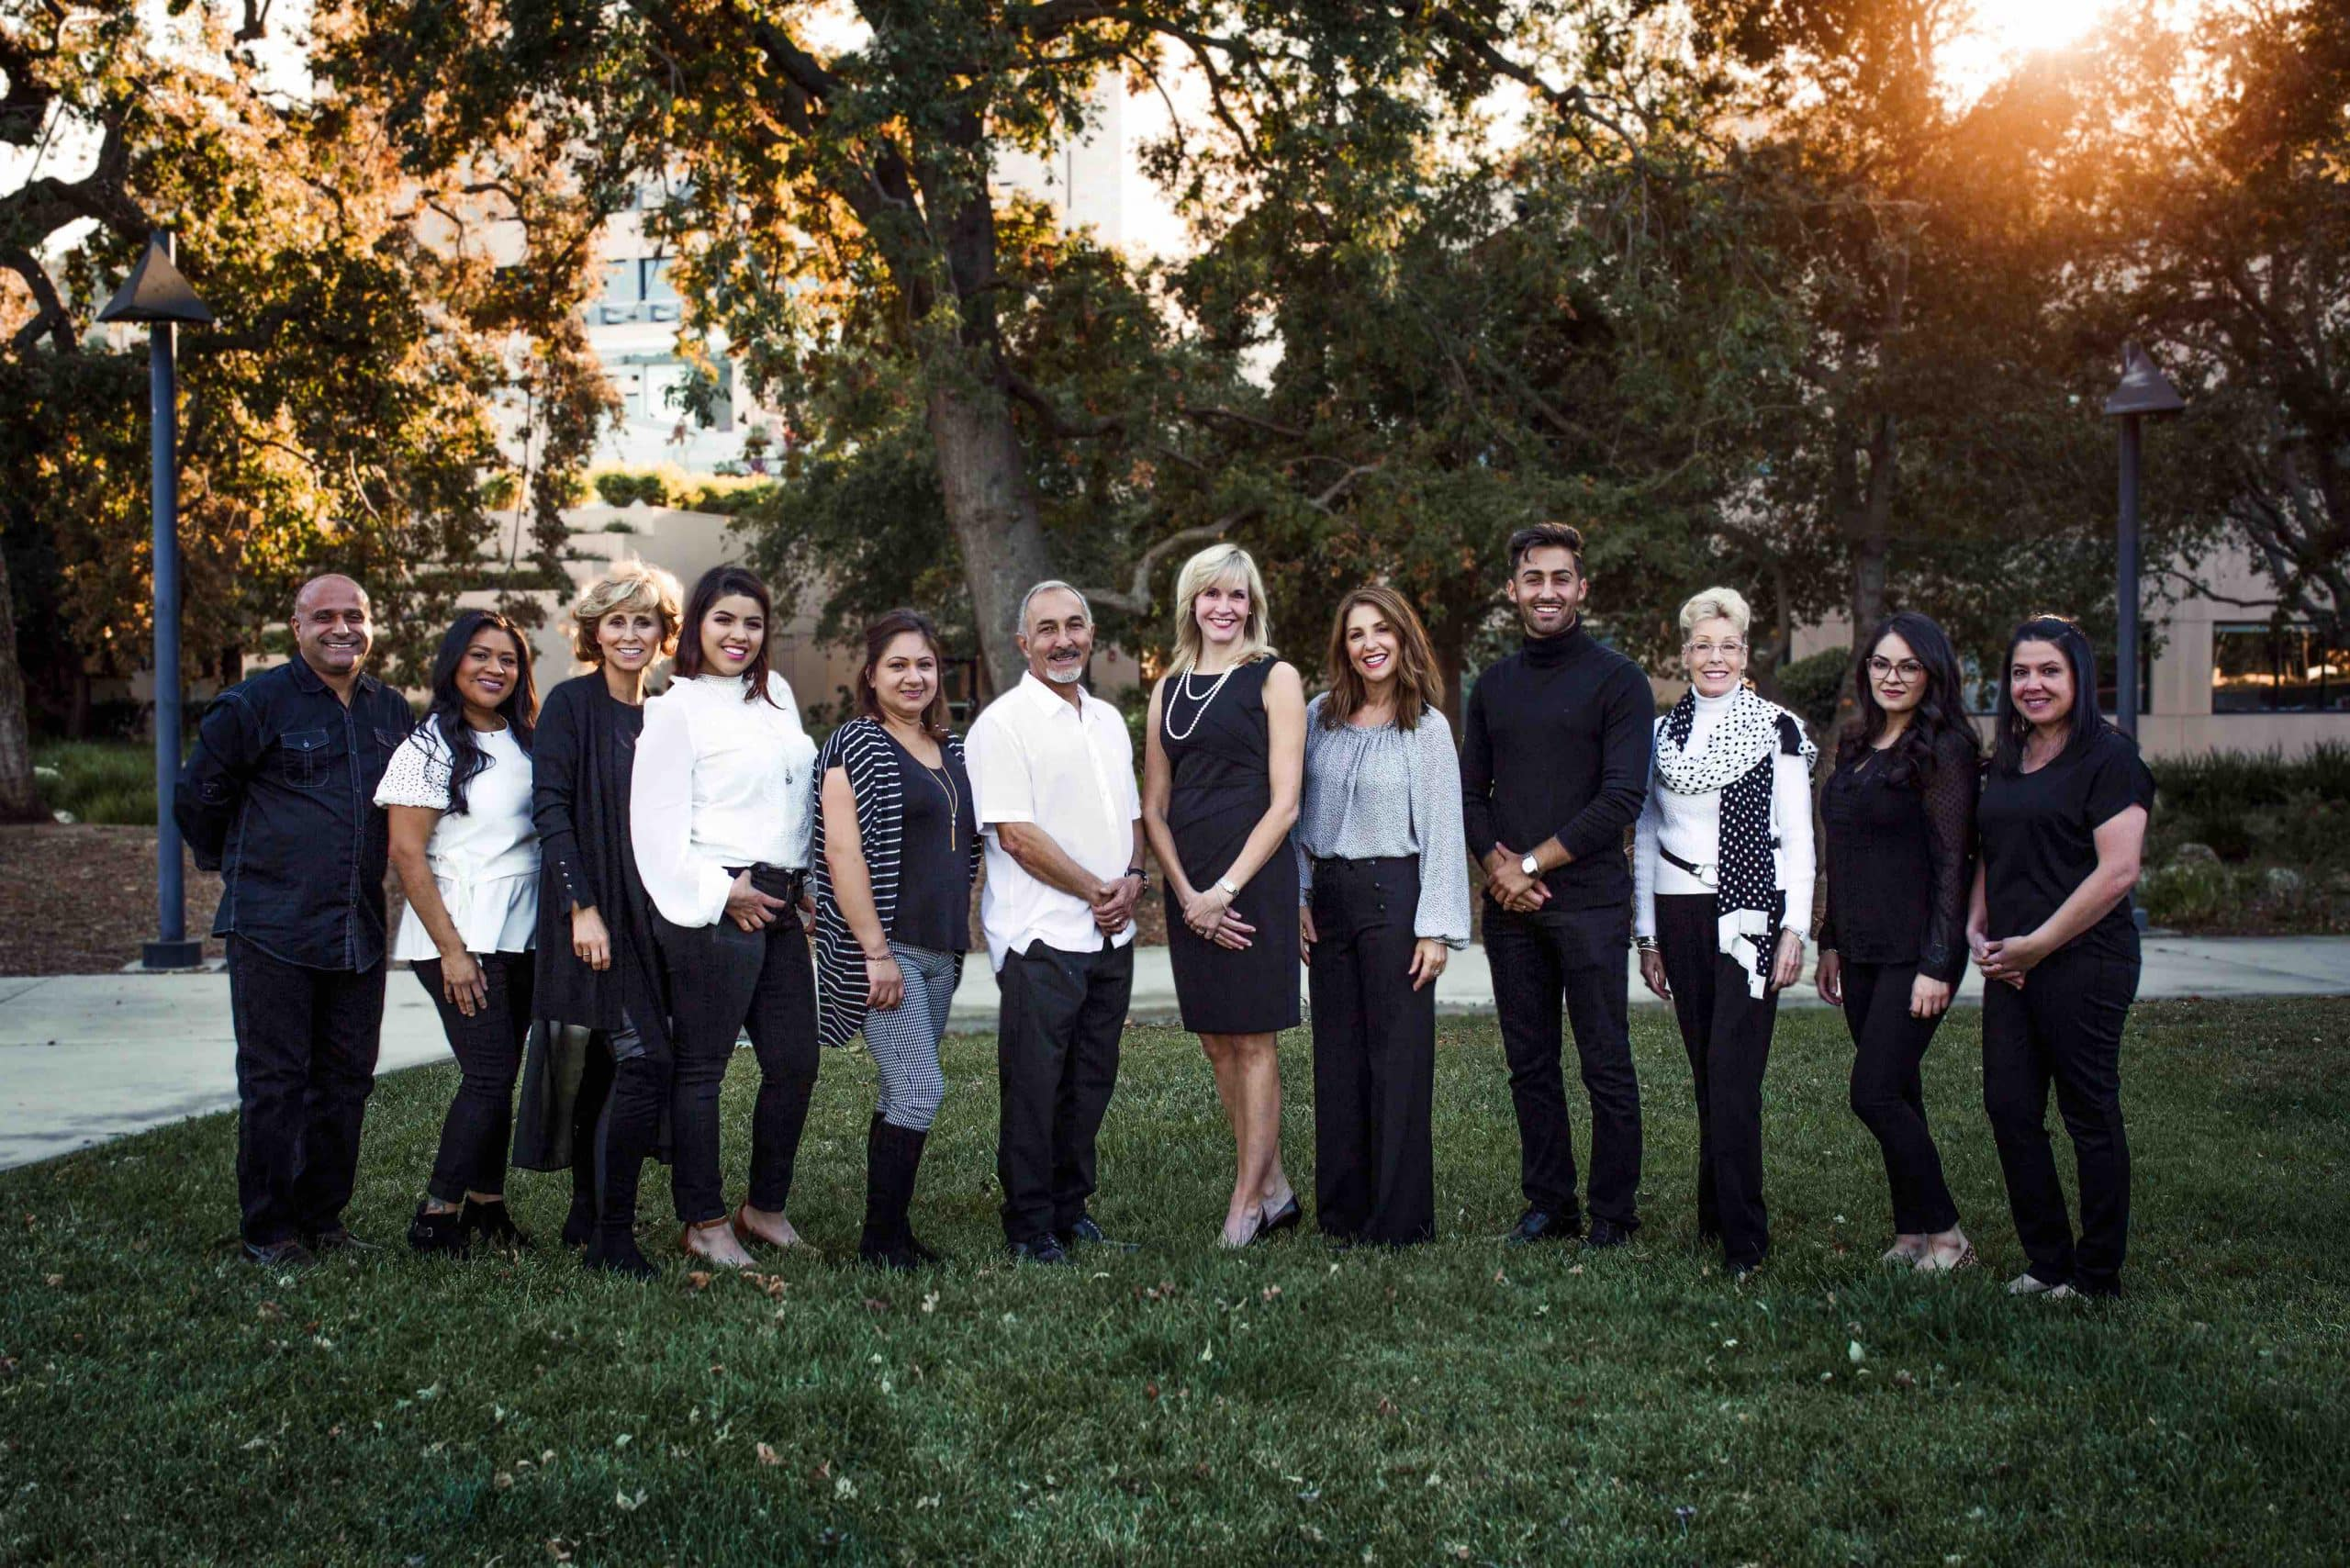 beautiful dentistry staff dressed in black and white thousand oaks